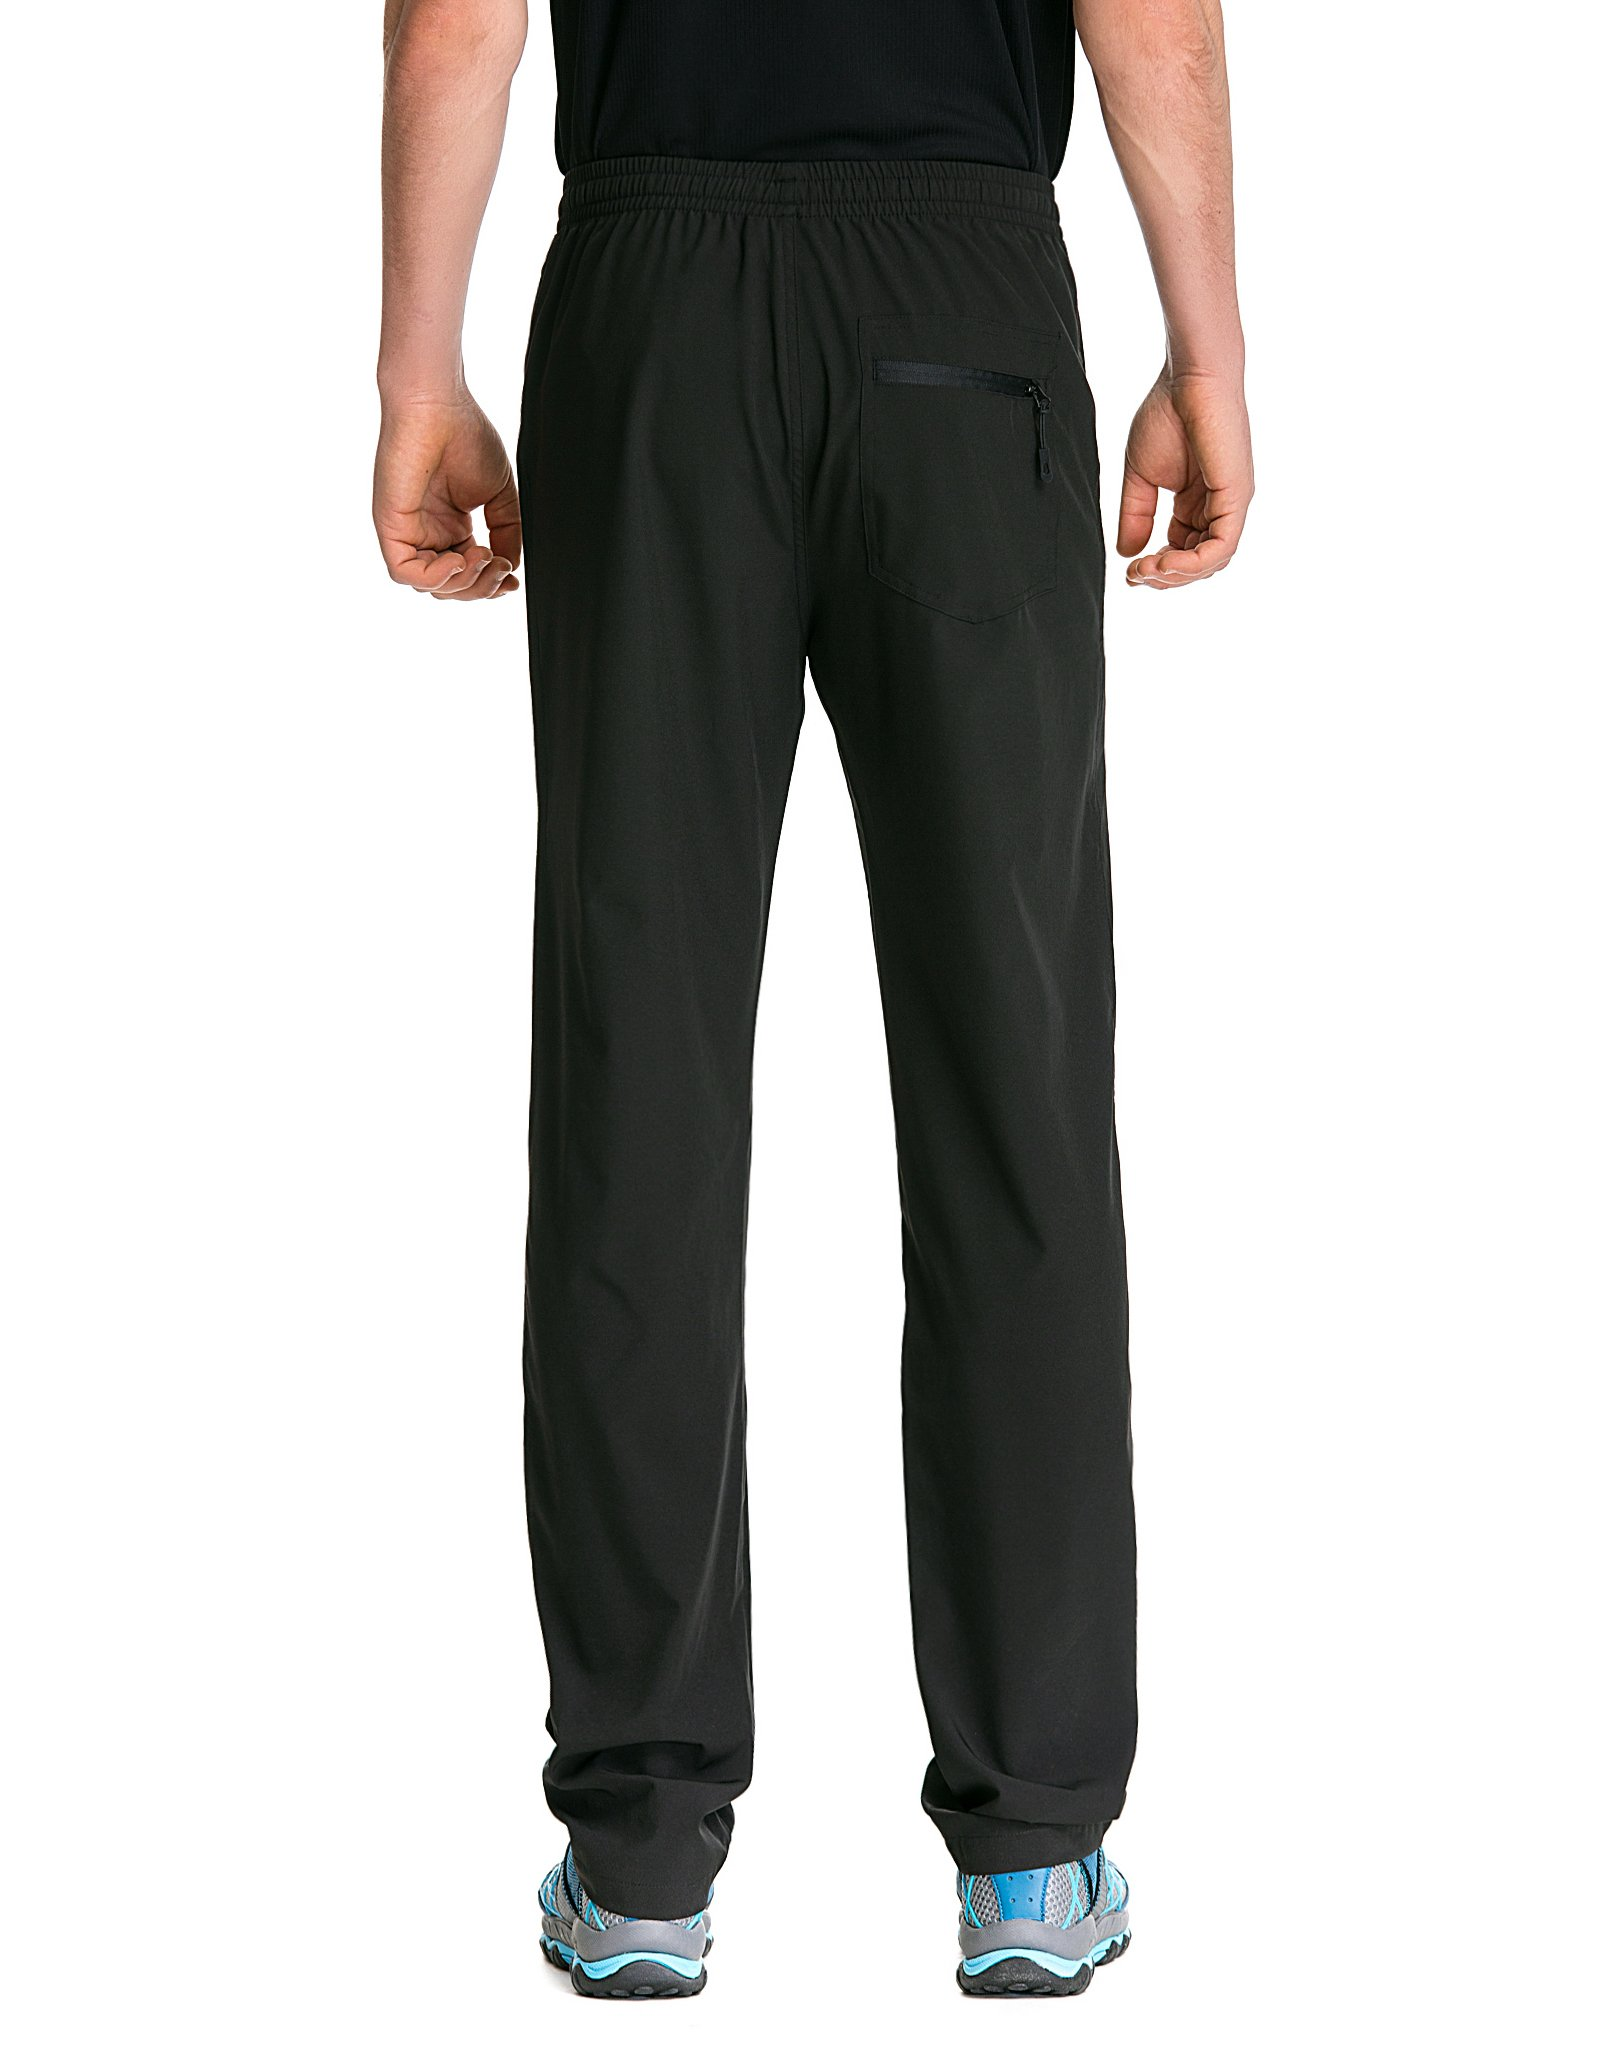 Trailside Supply Co. Men's Light Weight Stretch Elastic-Waist Drawstring Track Running Gym Pants Large Black by Trailside Supply Co. (Image #4)